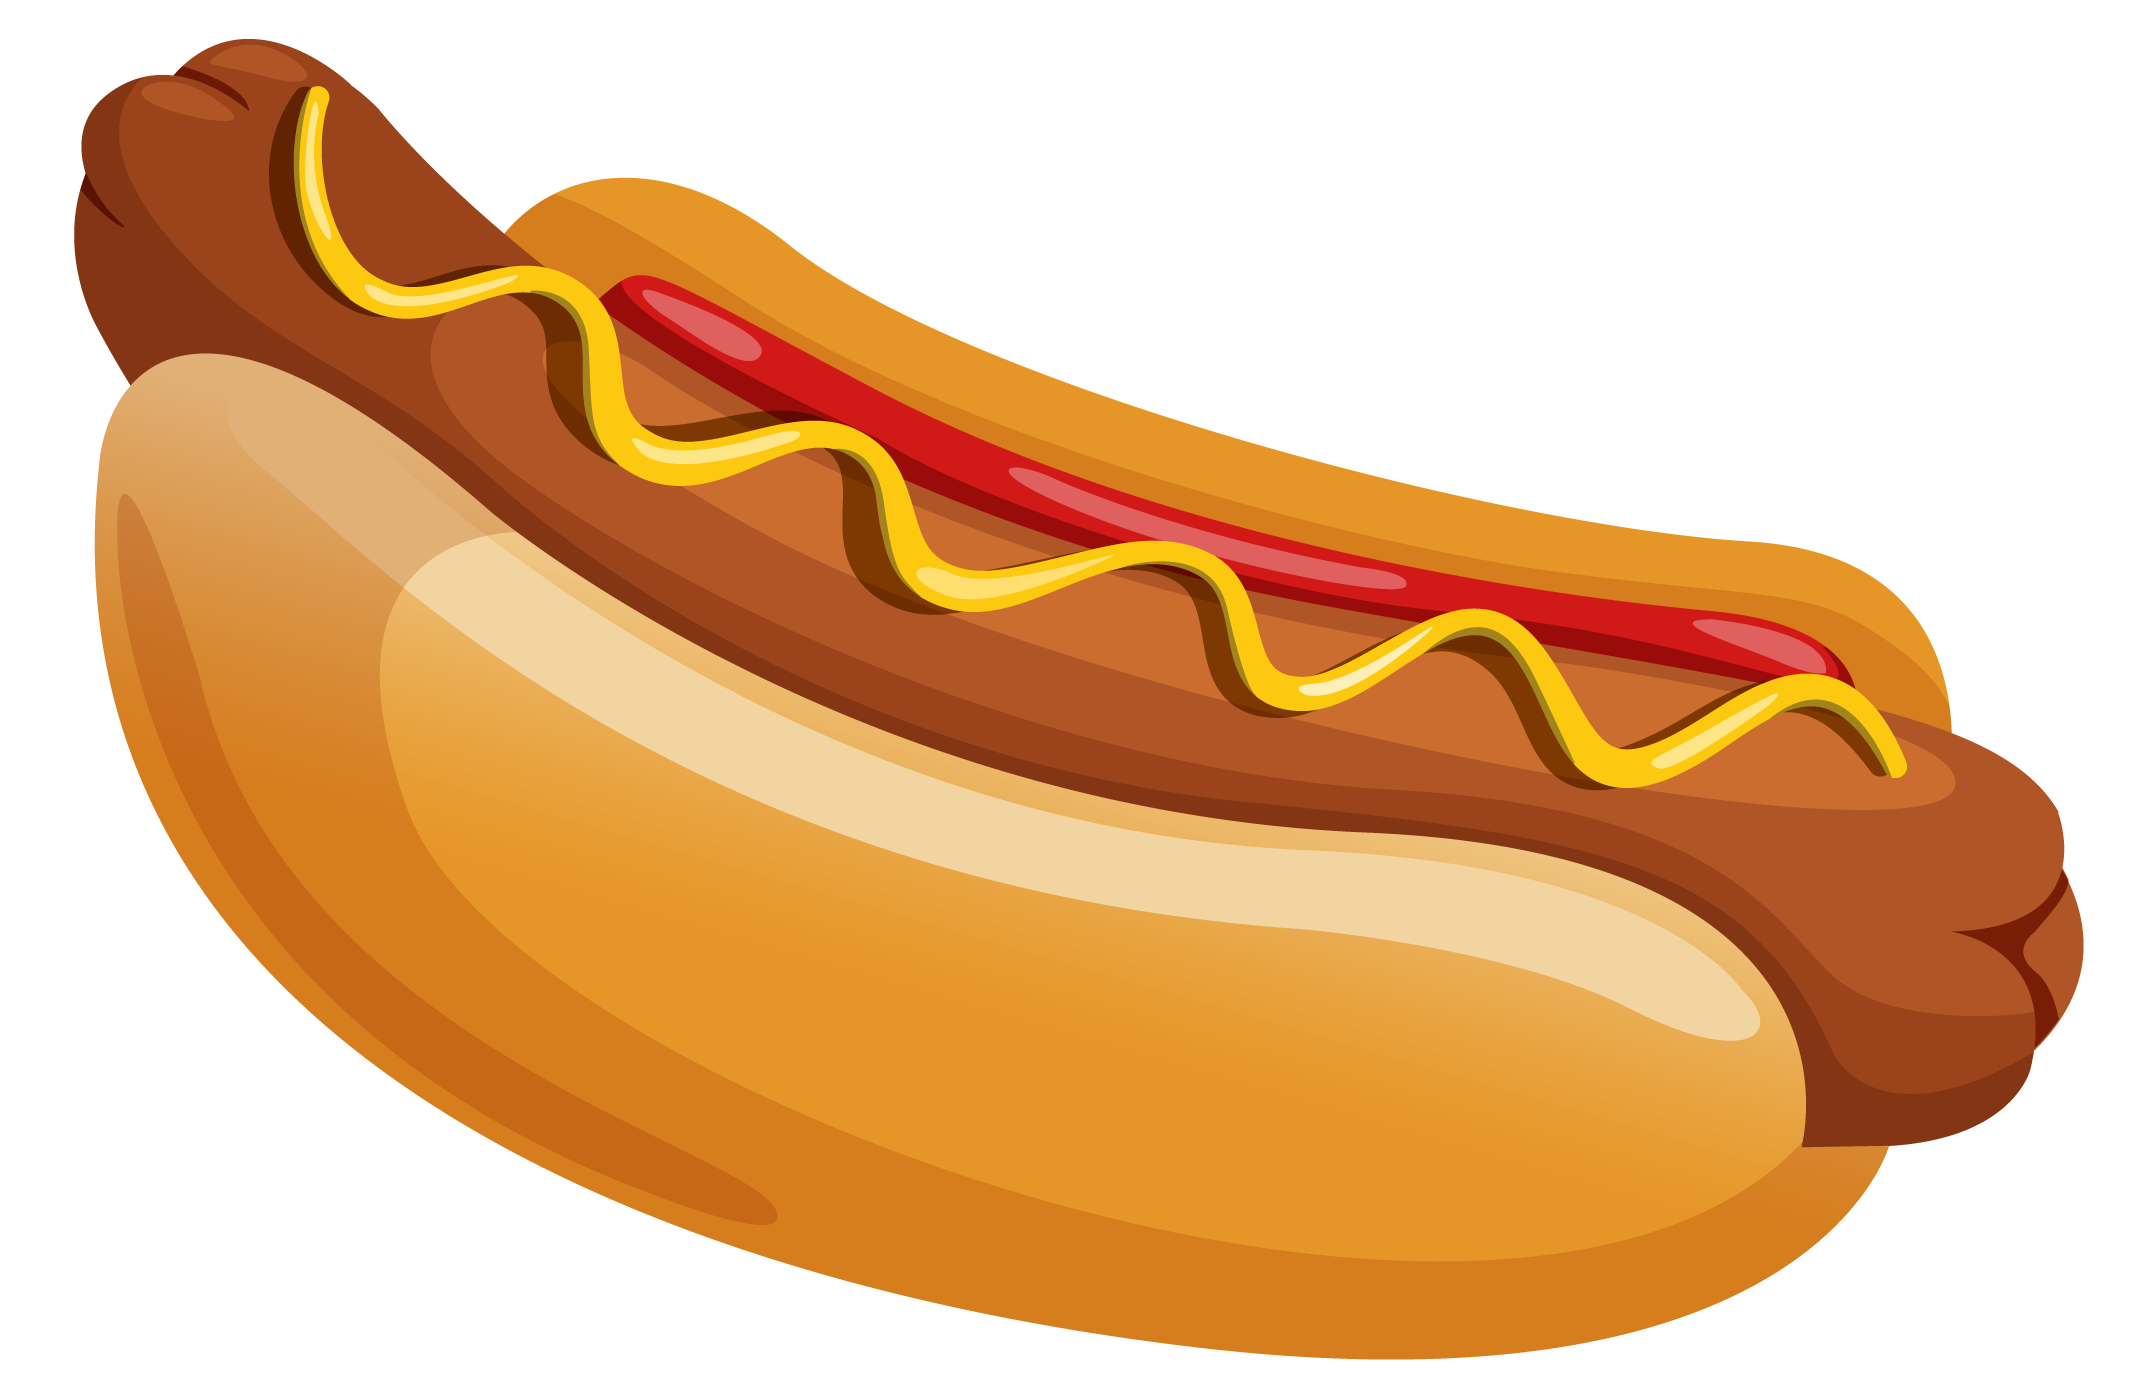 Hot dog clip art download .